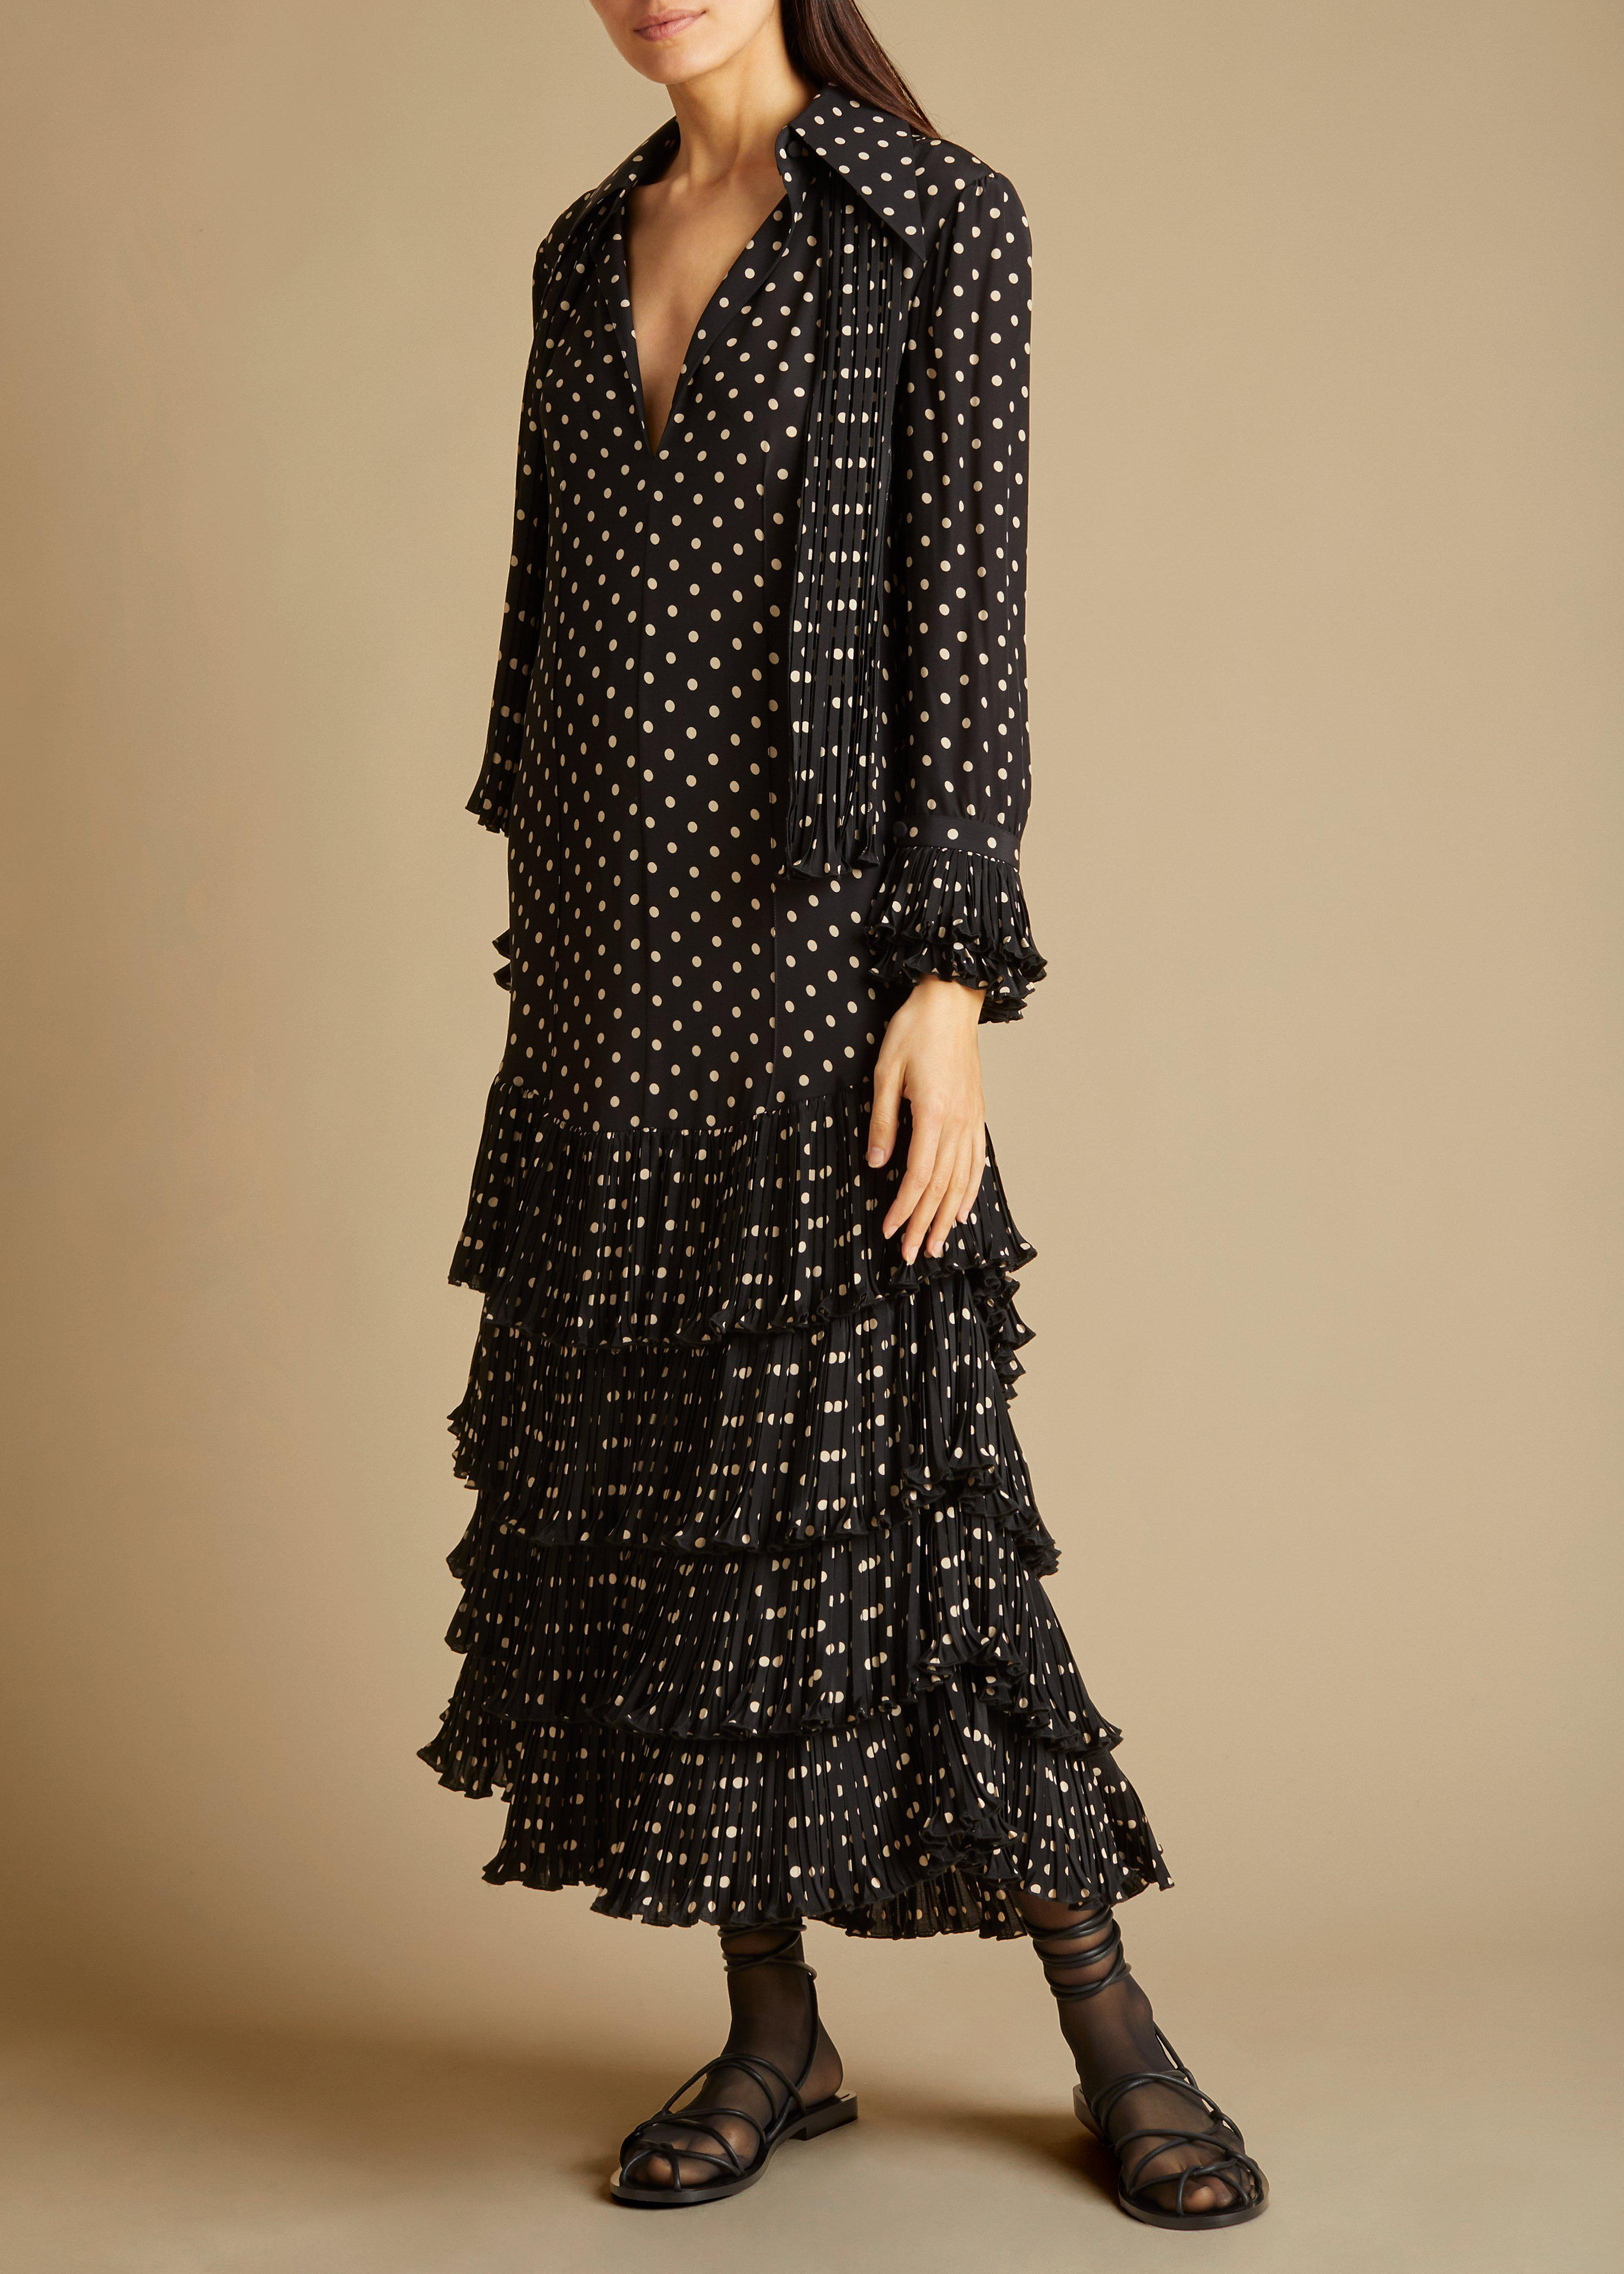 The Dolly Dress in Black and Creme Dot 0